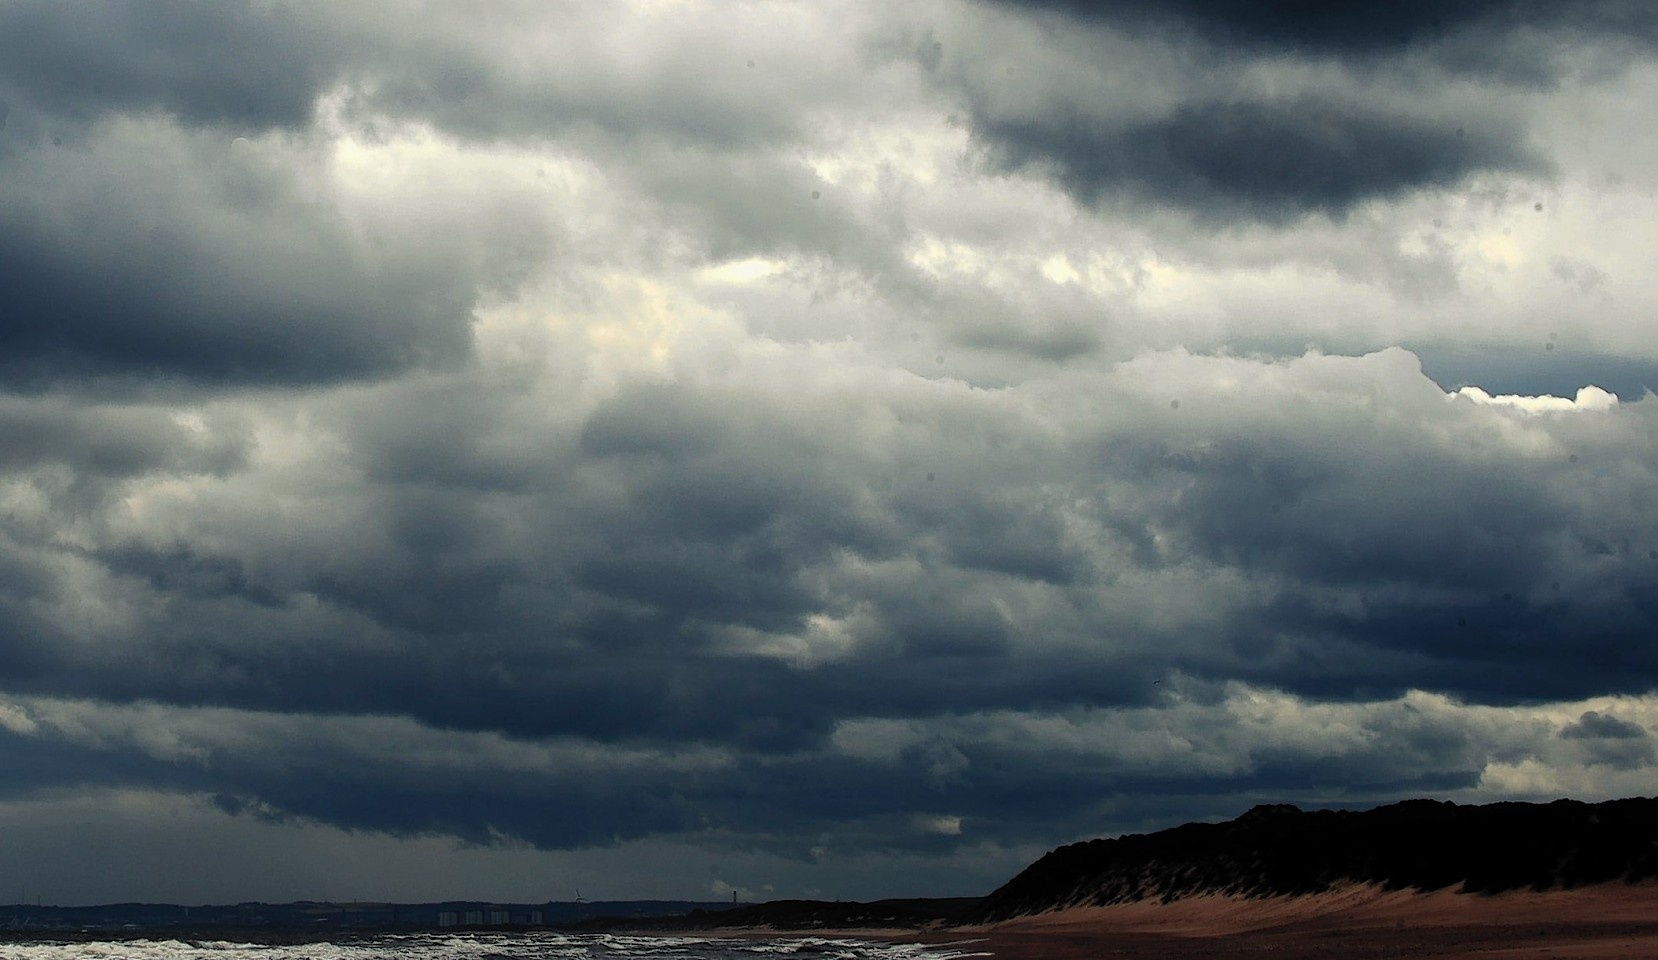 Storm clouds and high winds